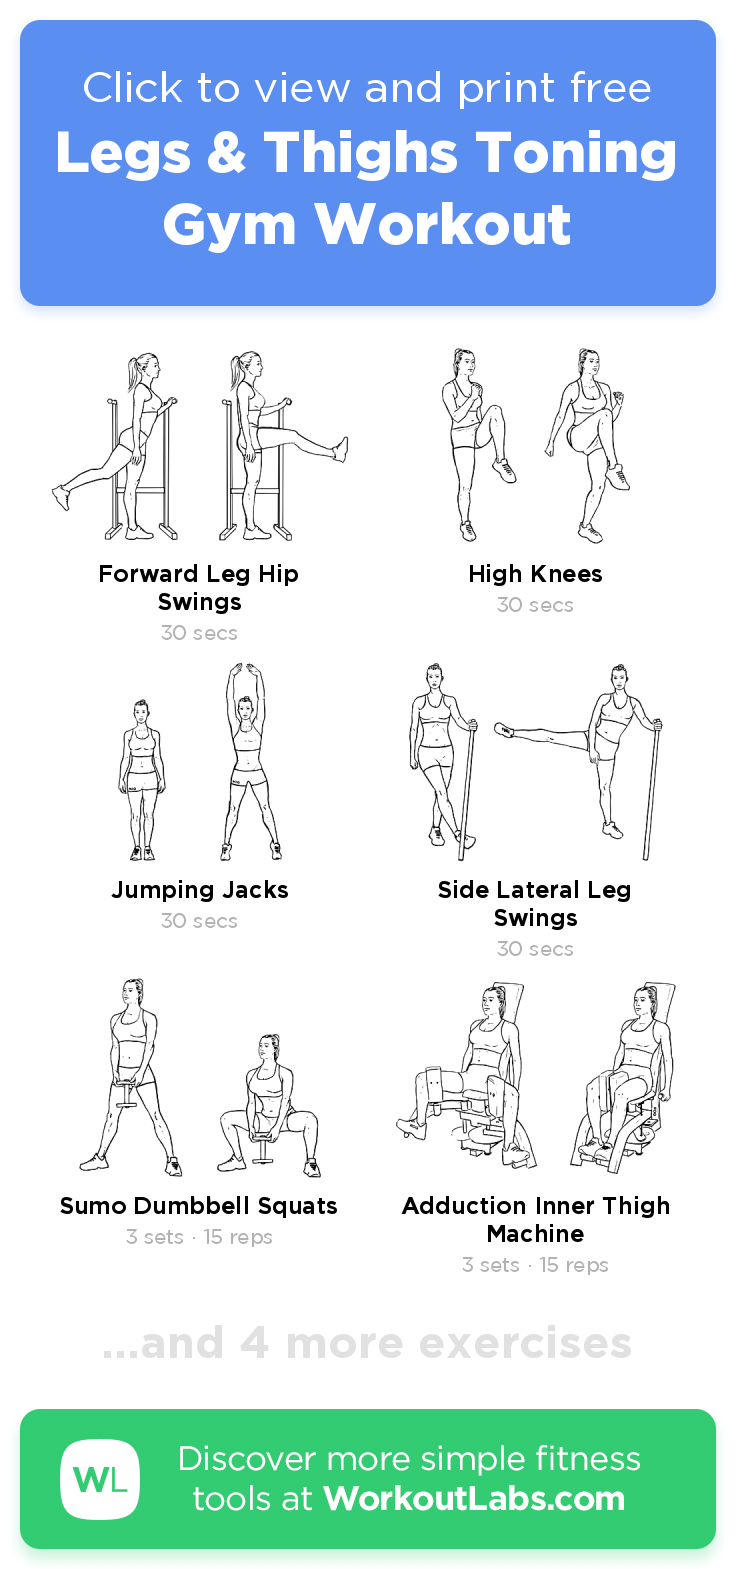 Legs & Thighs Toning Gym Workout – Click To View And Print Within Free Printable Program For Inner Thights